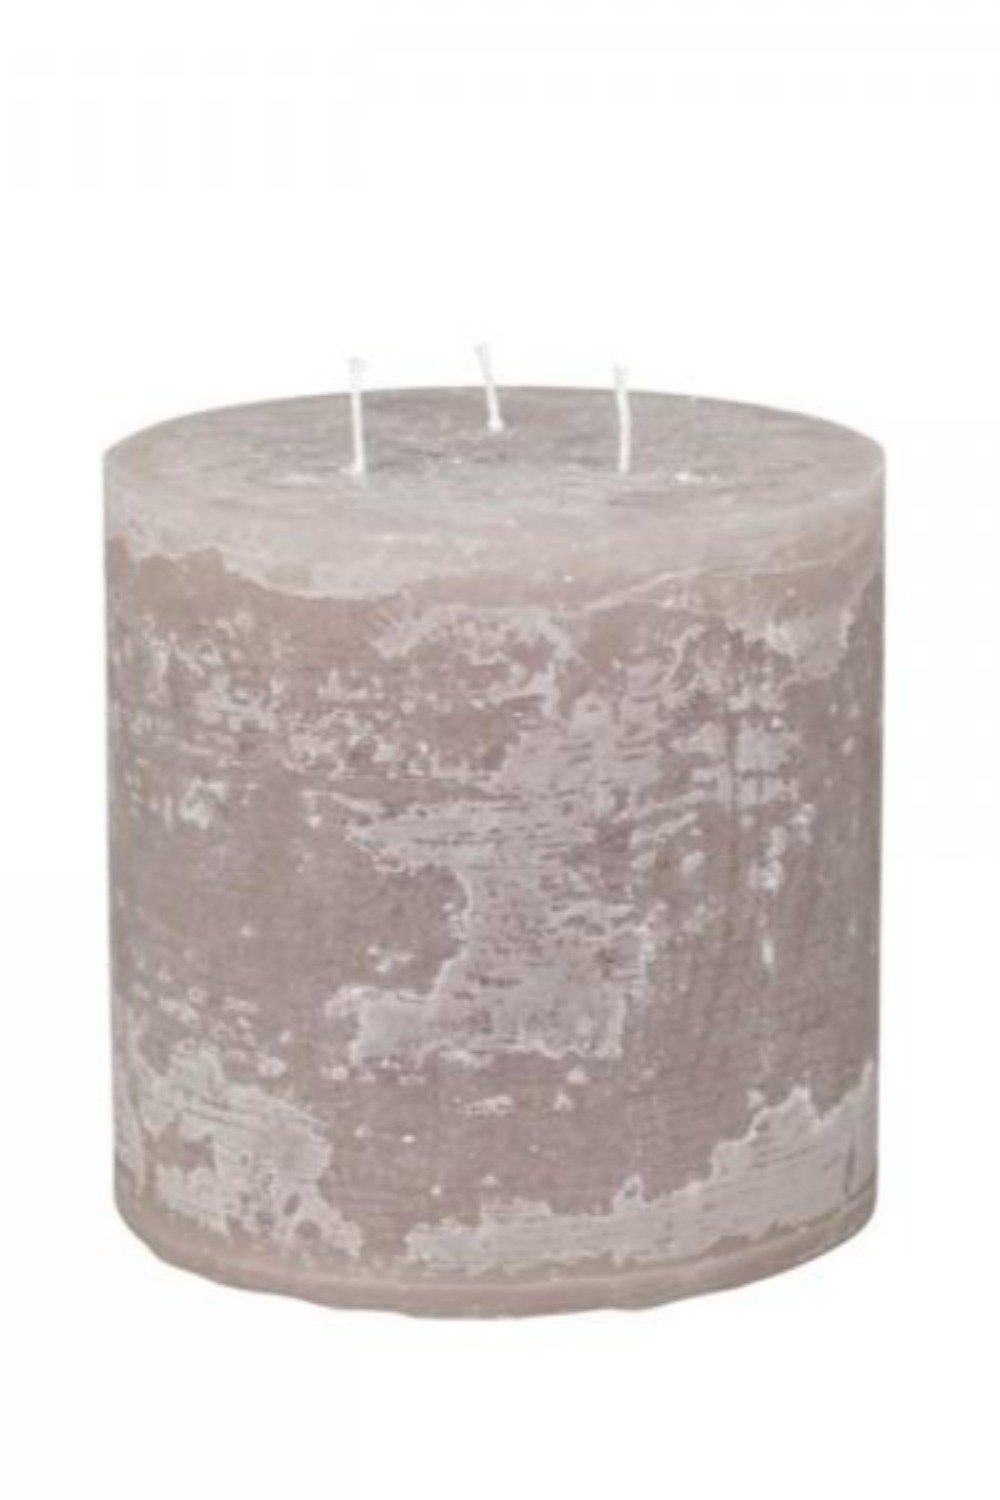 Rustic Pillar Candle - Taupe Candles & Fragrance Blume 15x15cm